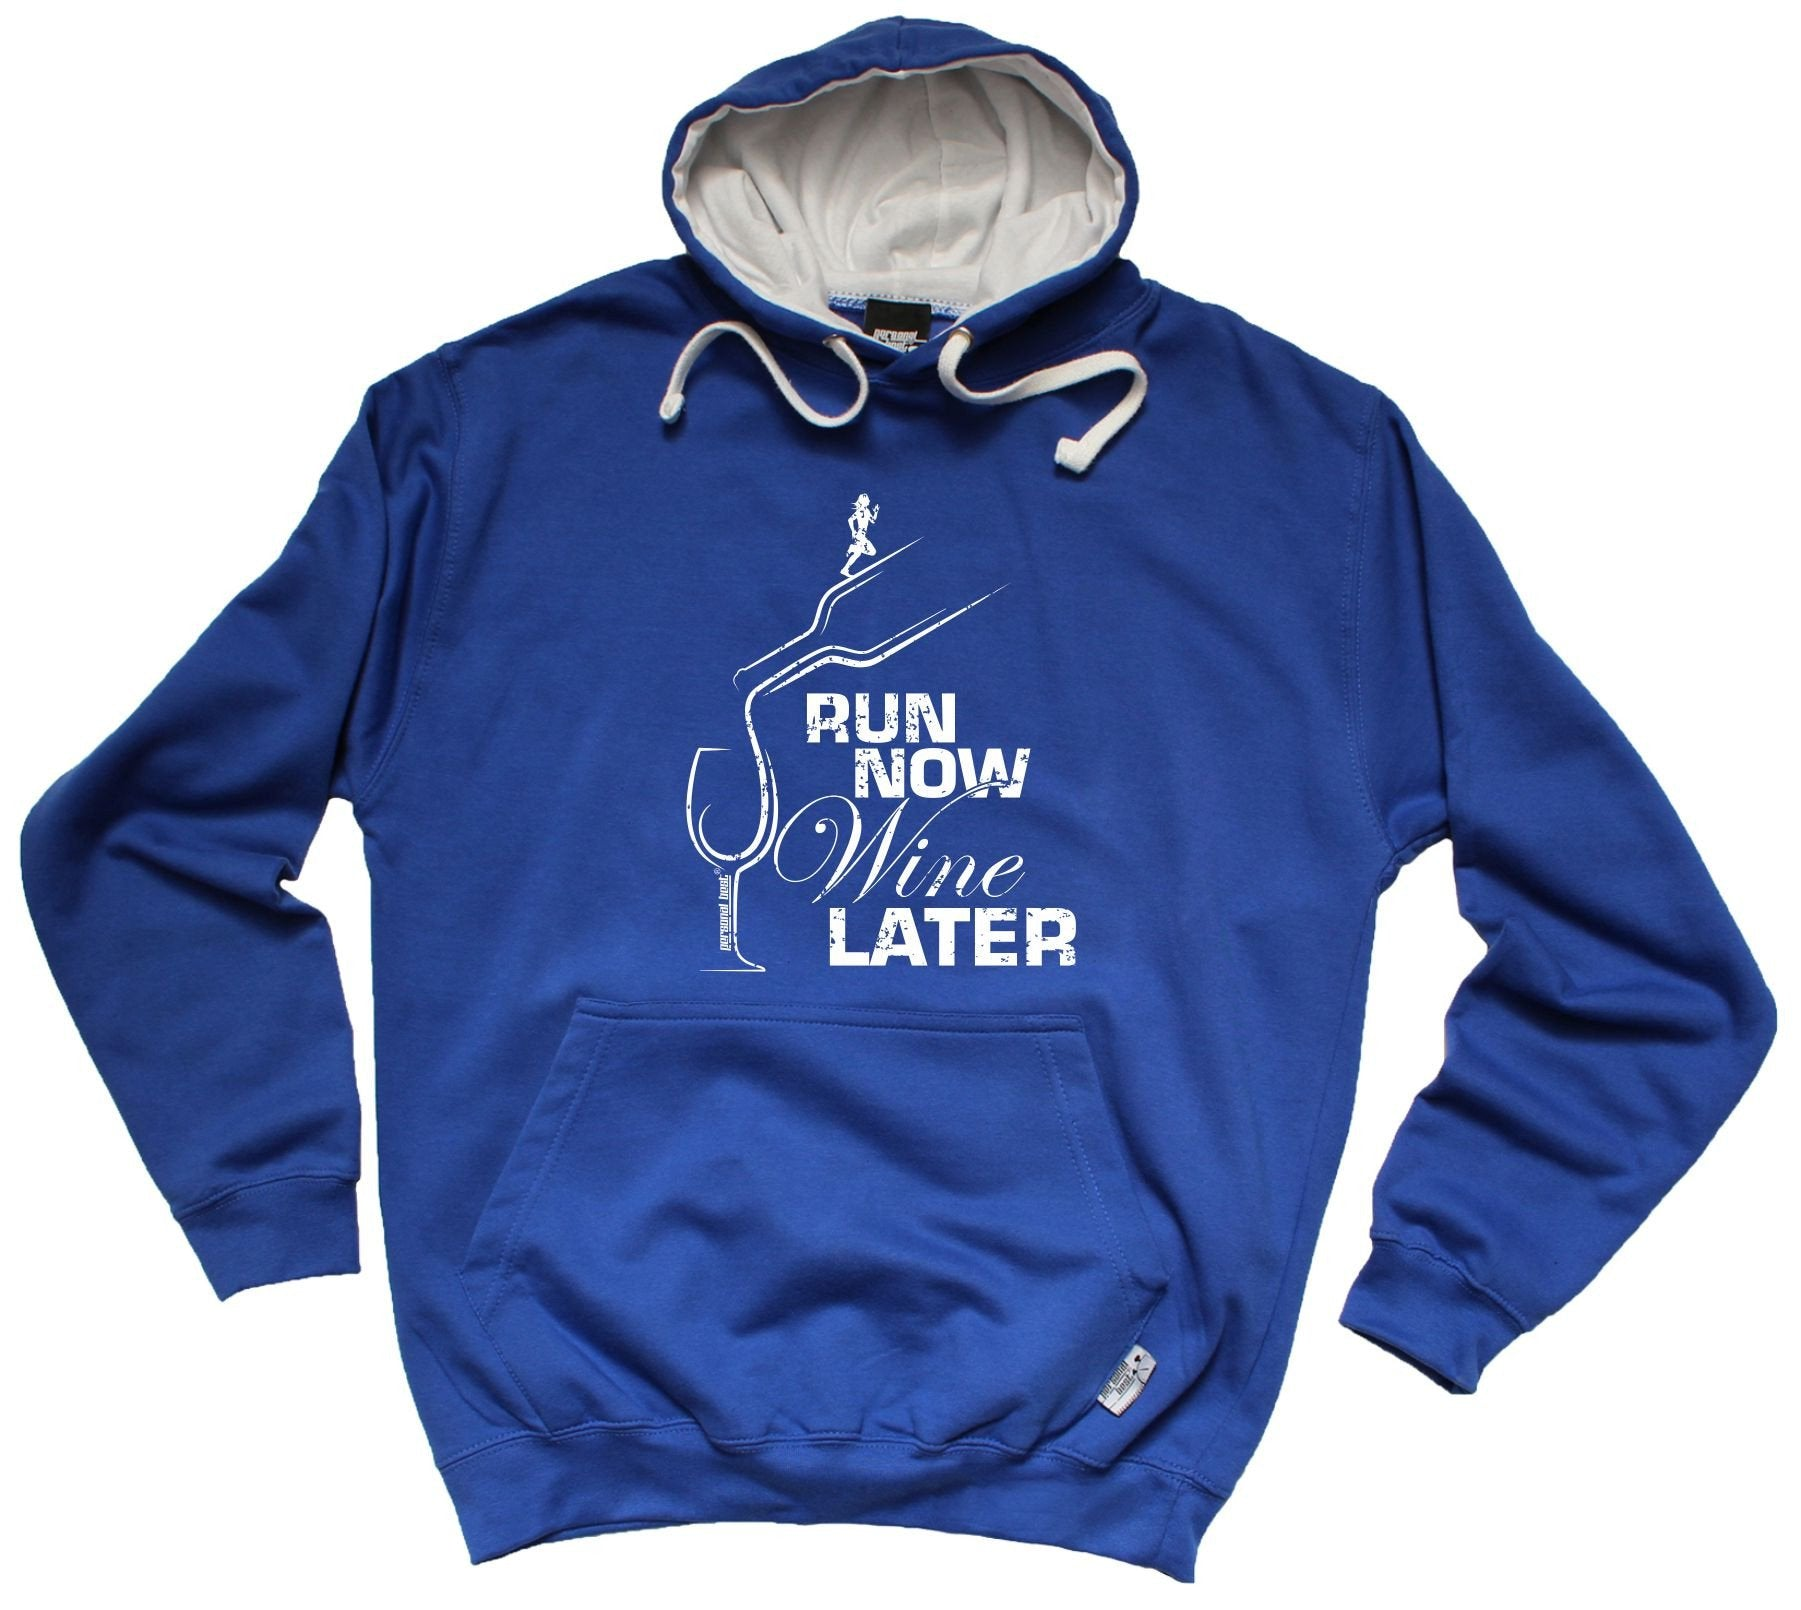 Run Now Wine Later - Funny t-shirts Hoodies & Sweatshirts